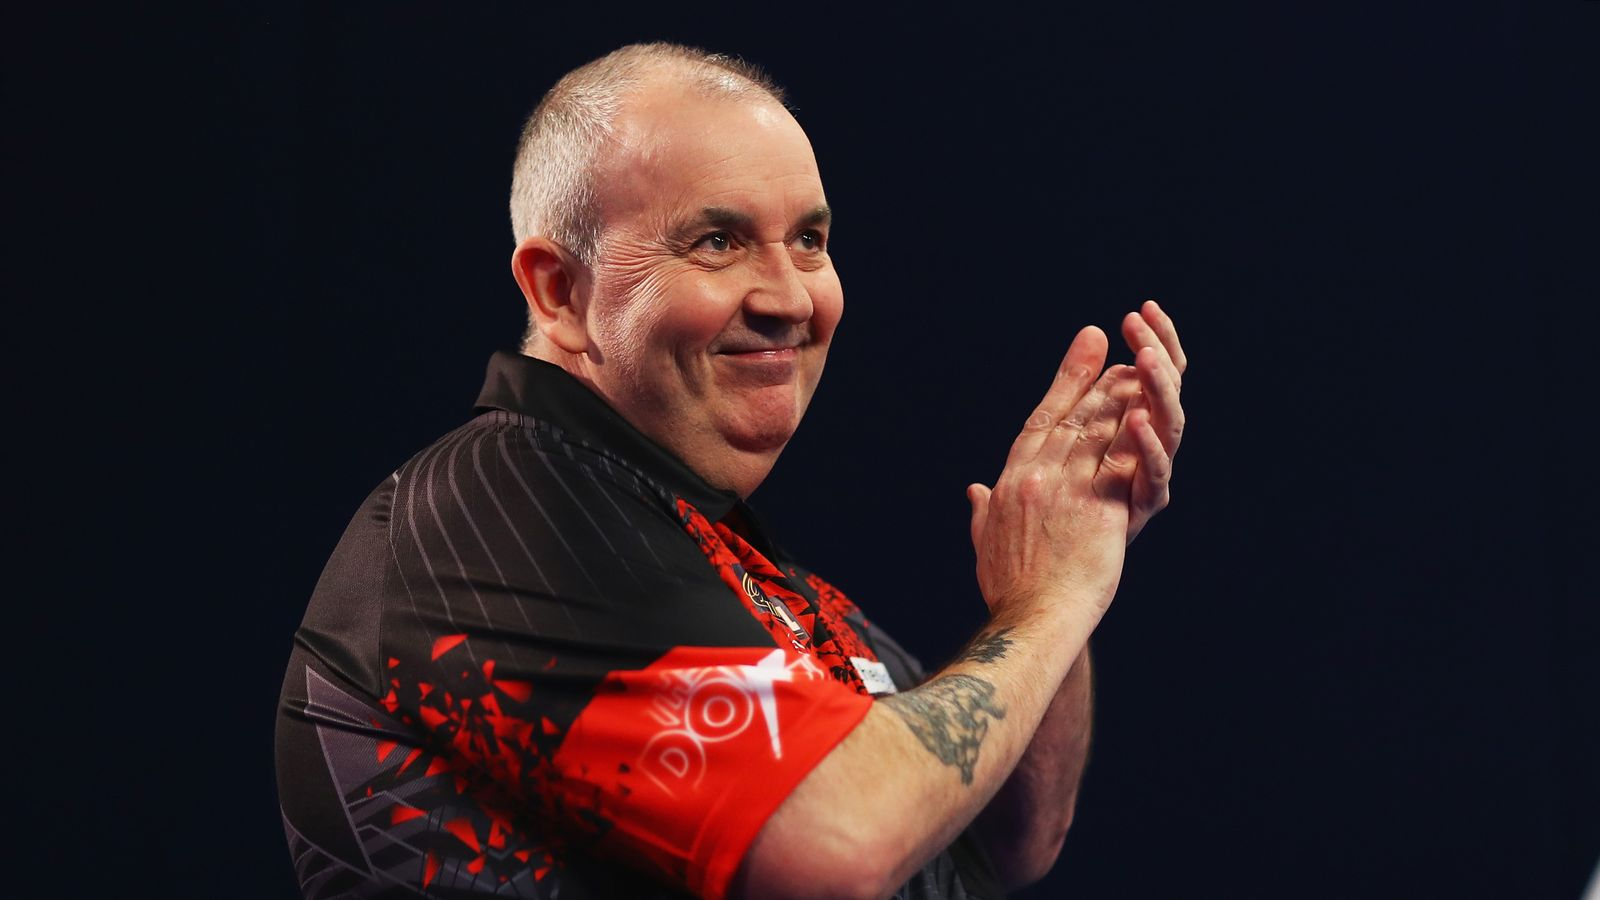 Phil 'The Power' Taylor to swap darts for a pool cue at the Ultimate Pool Masters